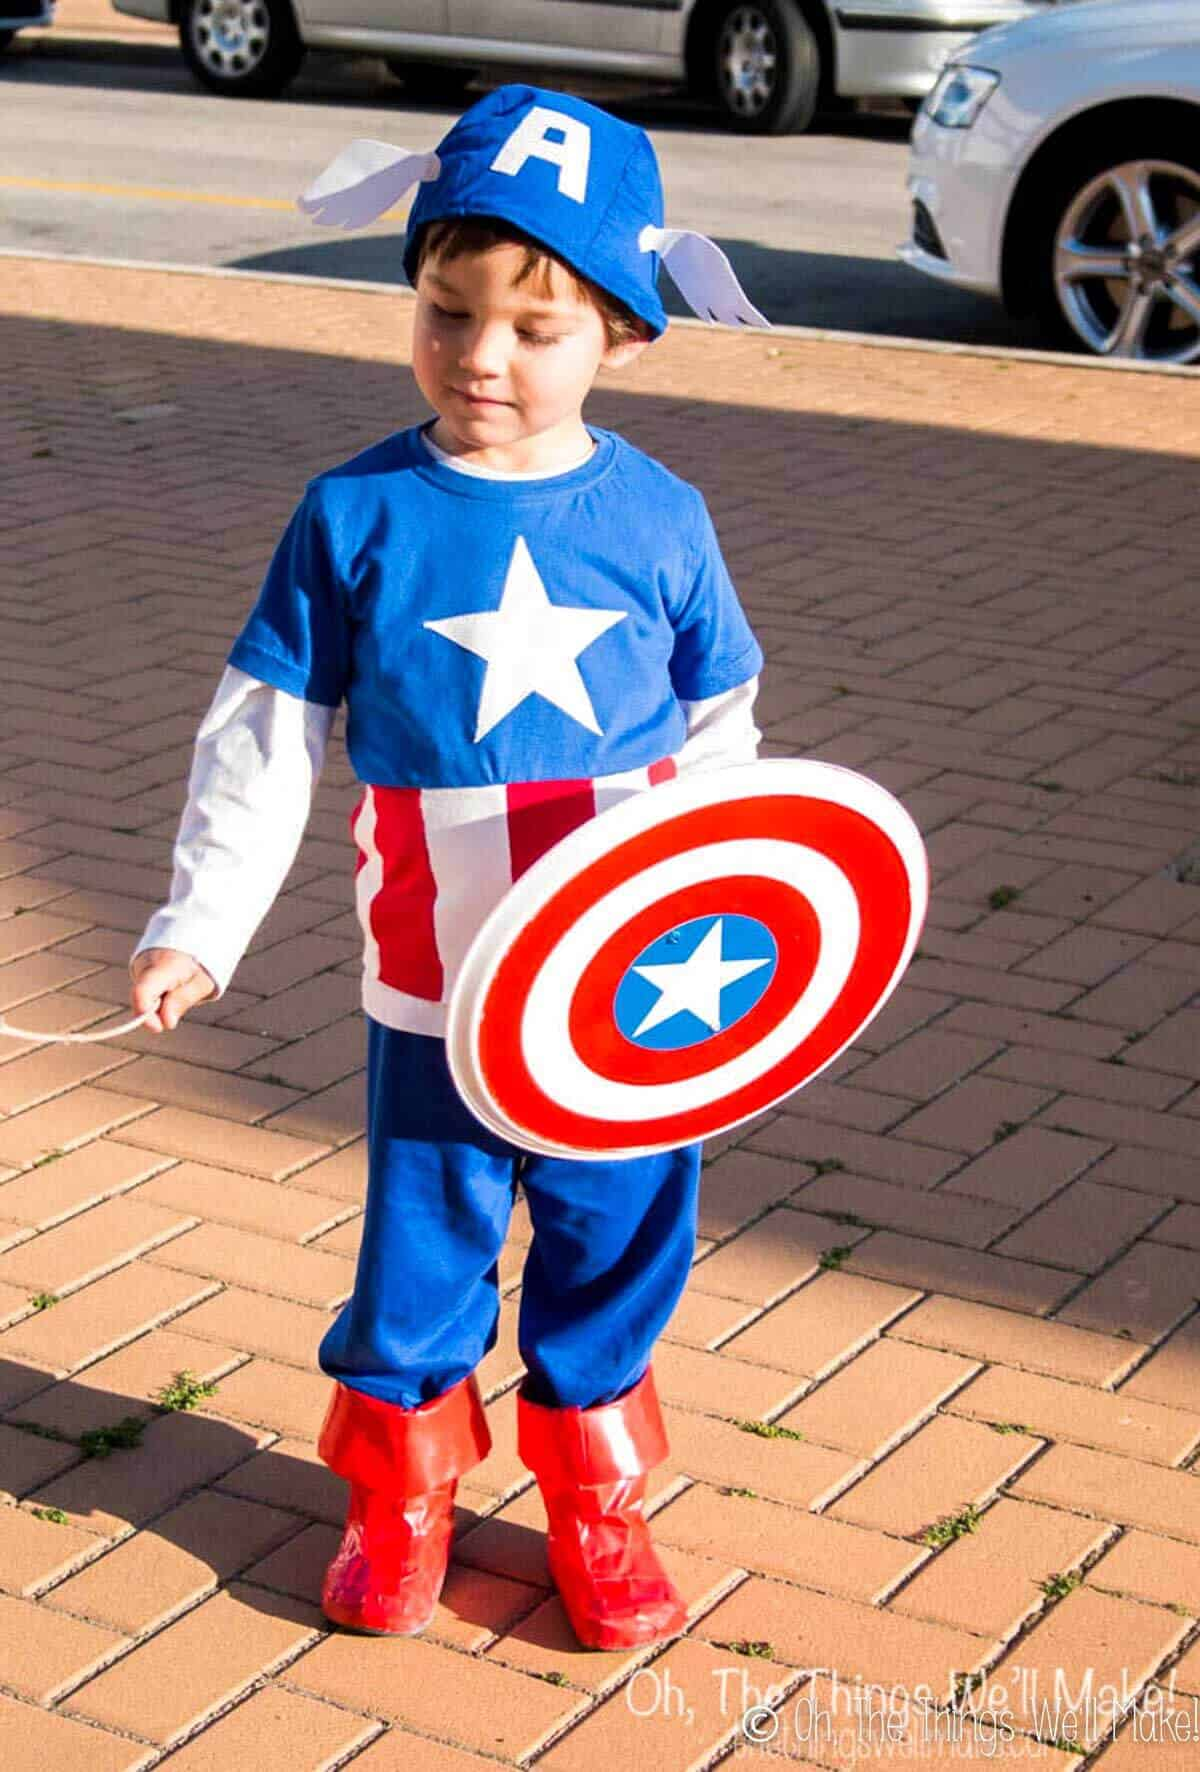 Boy outside dressed in homemade Captain America costume